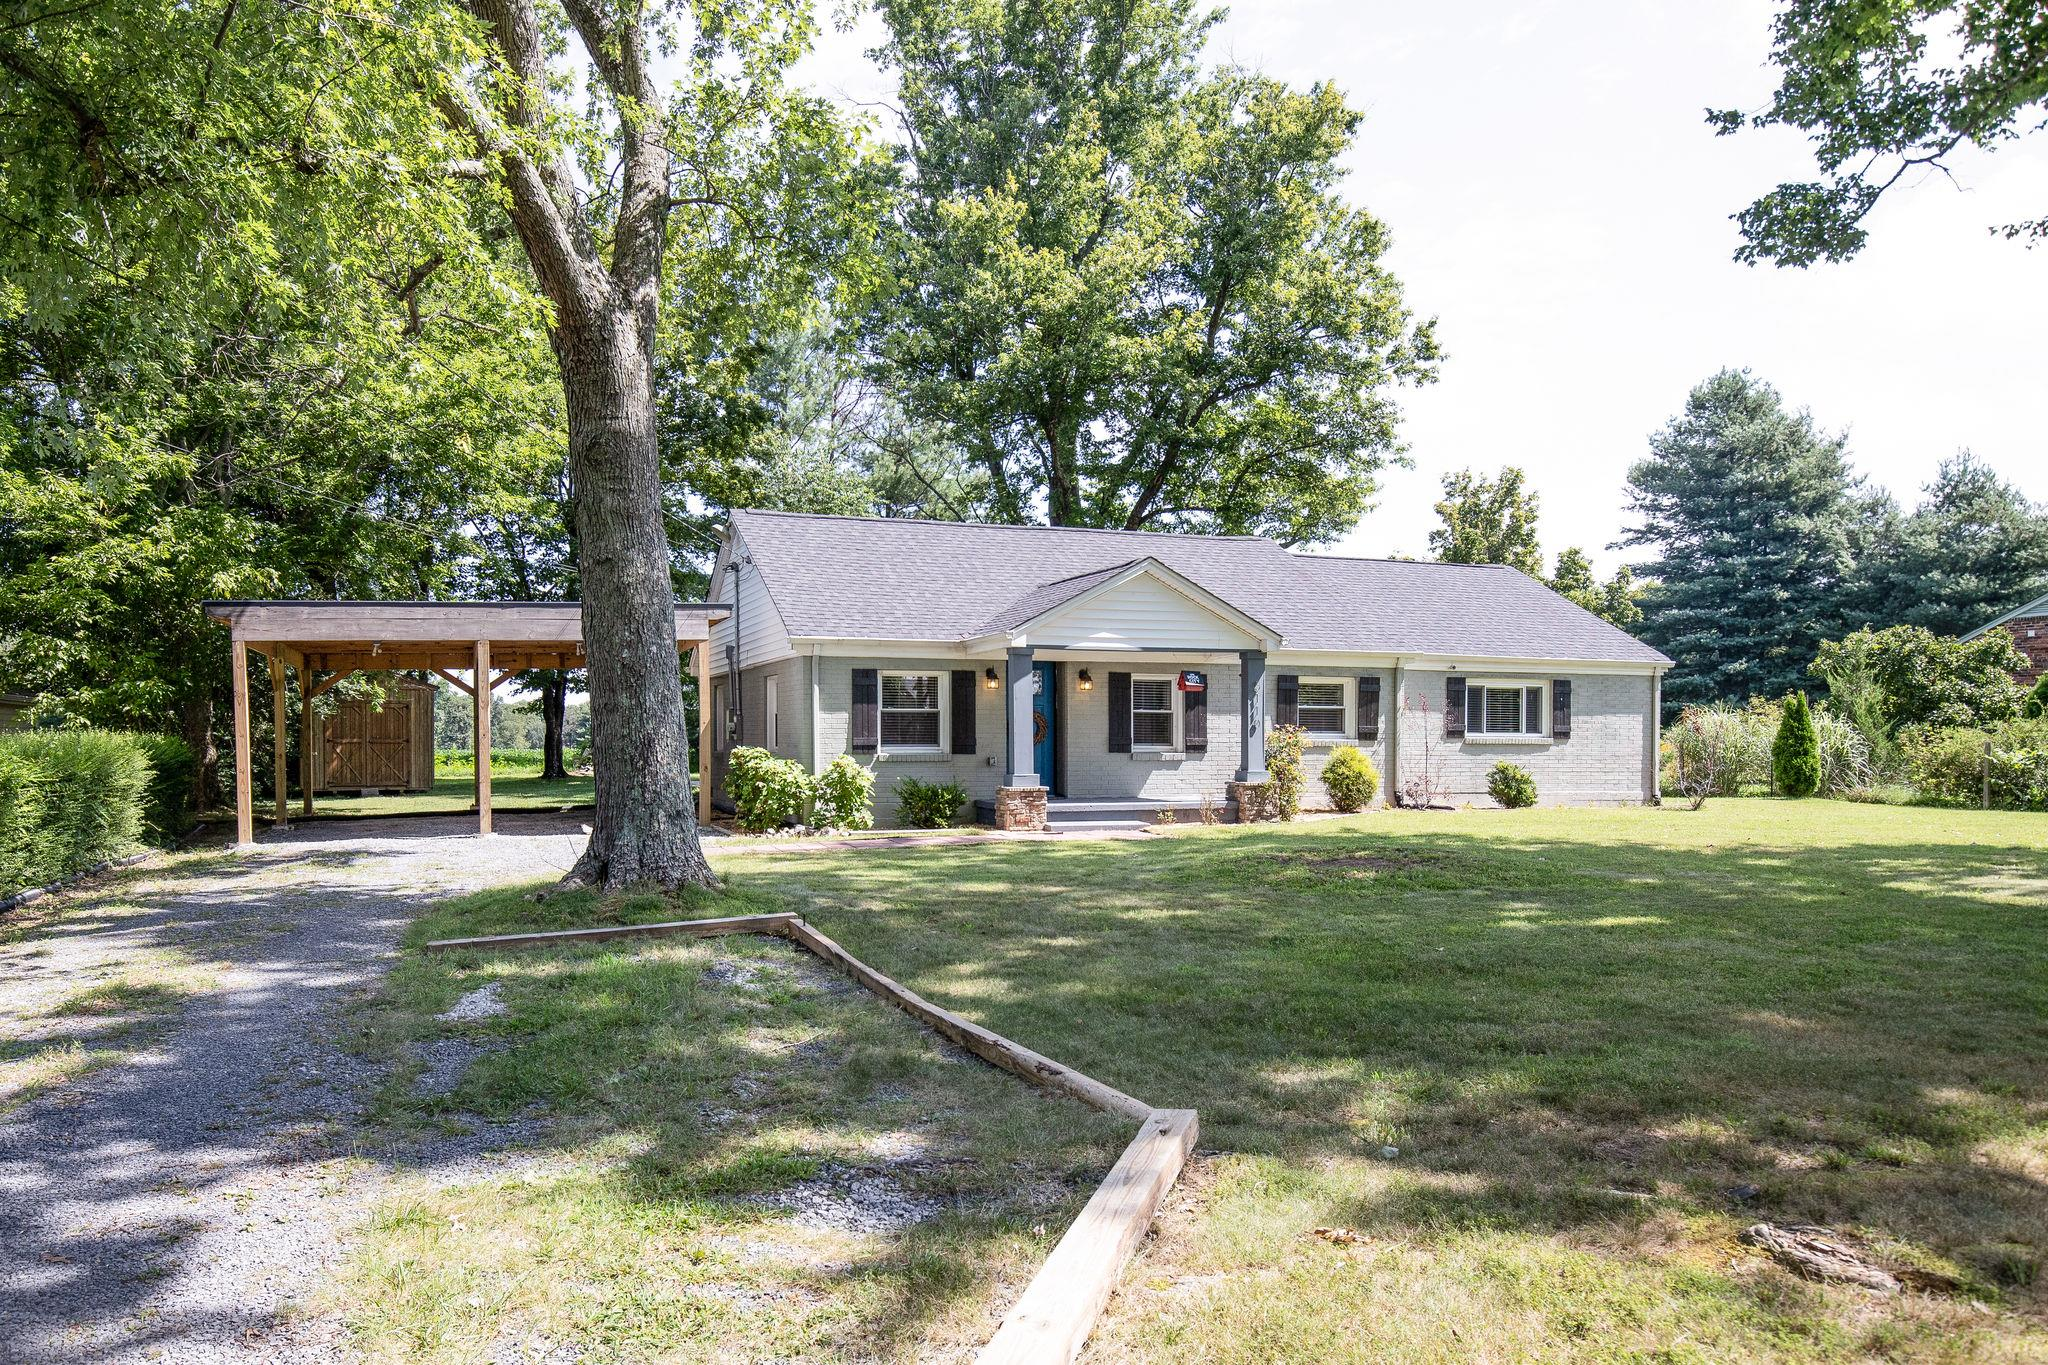 5110 Rawlings Rd, Joelton, TN 37080 - Joelton, TN real estate listing